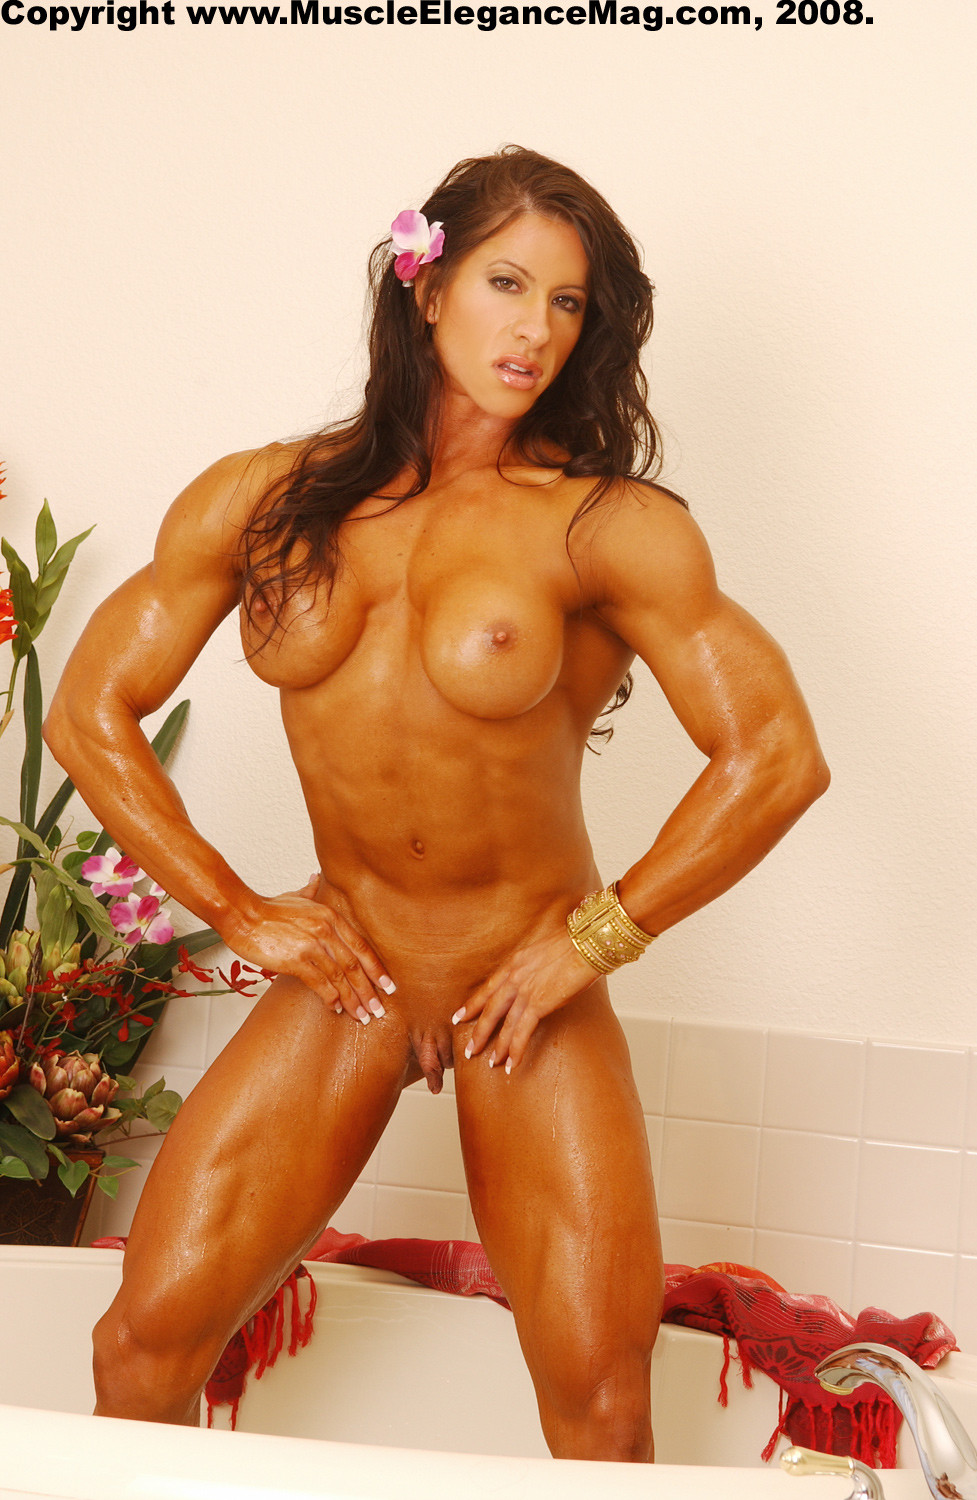 Extreme female bodybuilder most